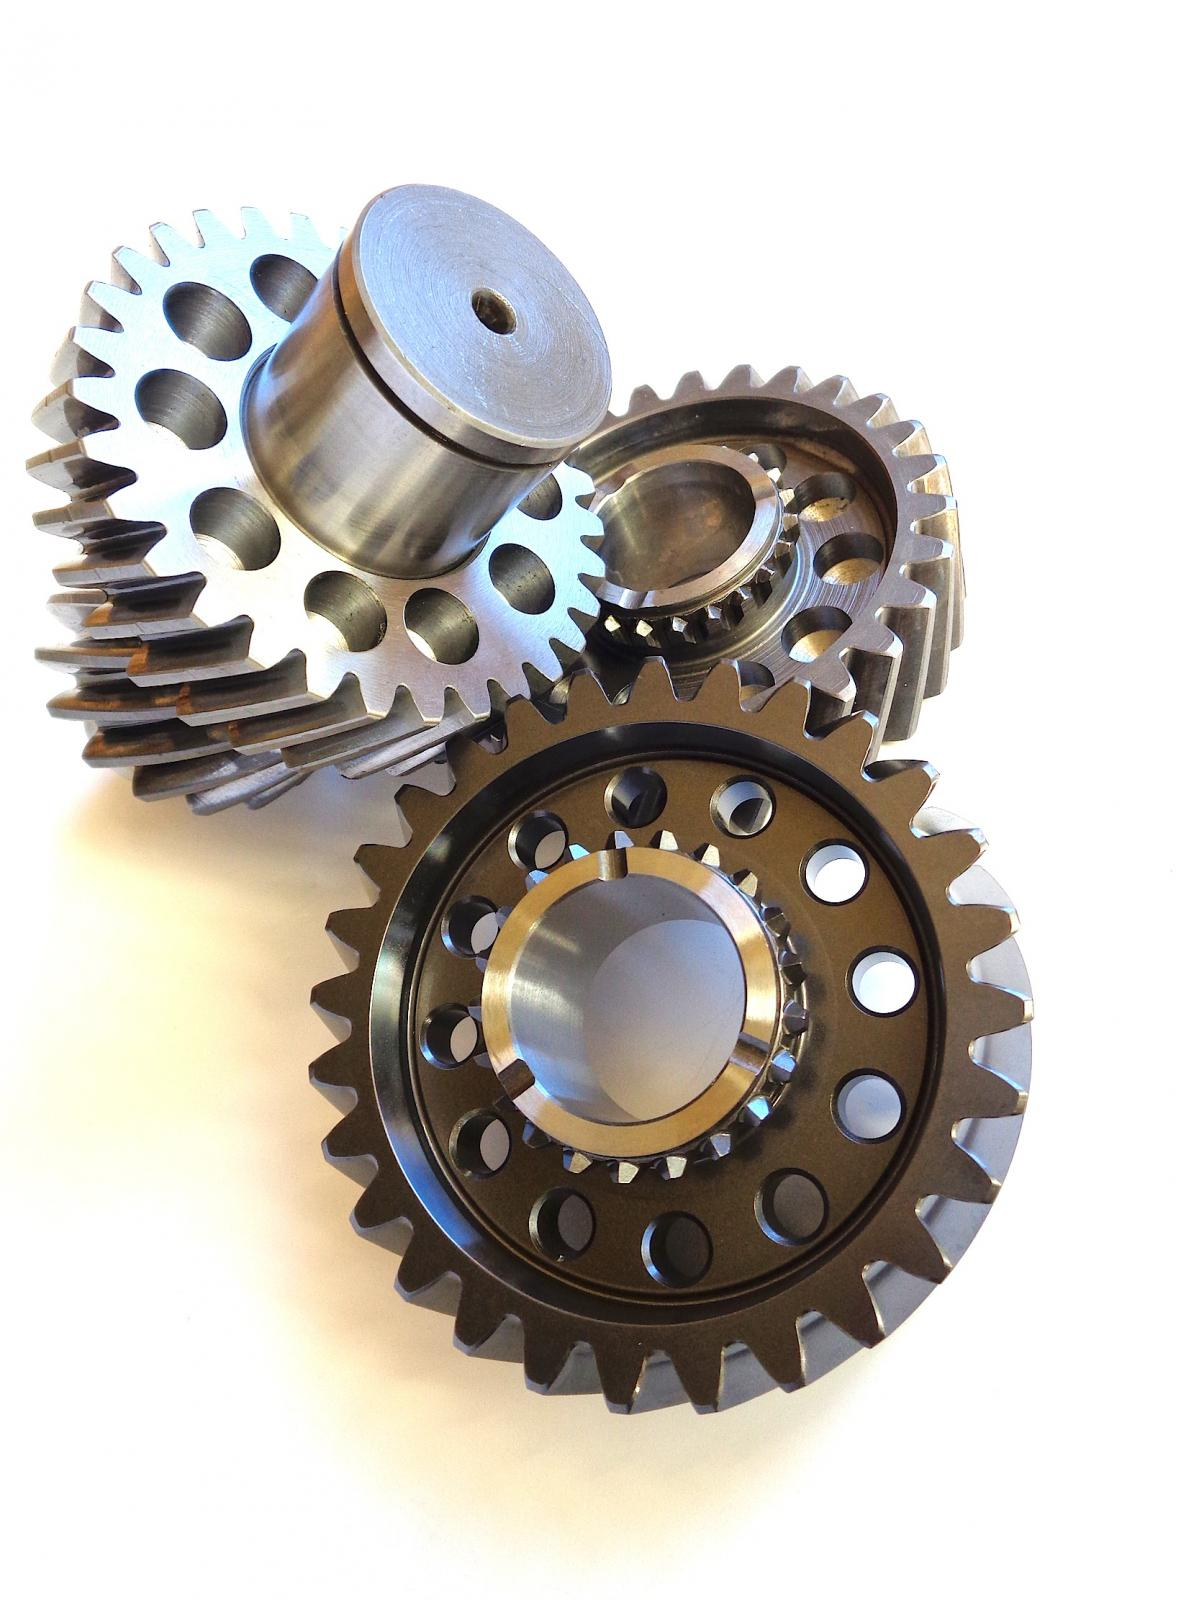 Lightened Syncro 4WD gears